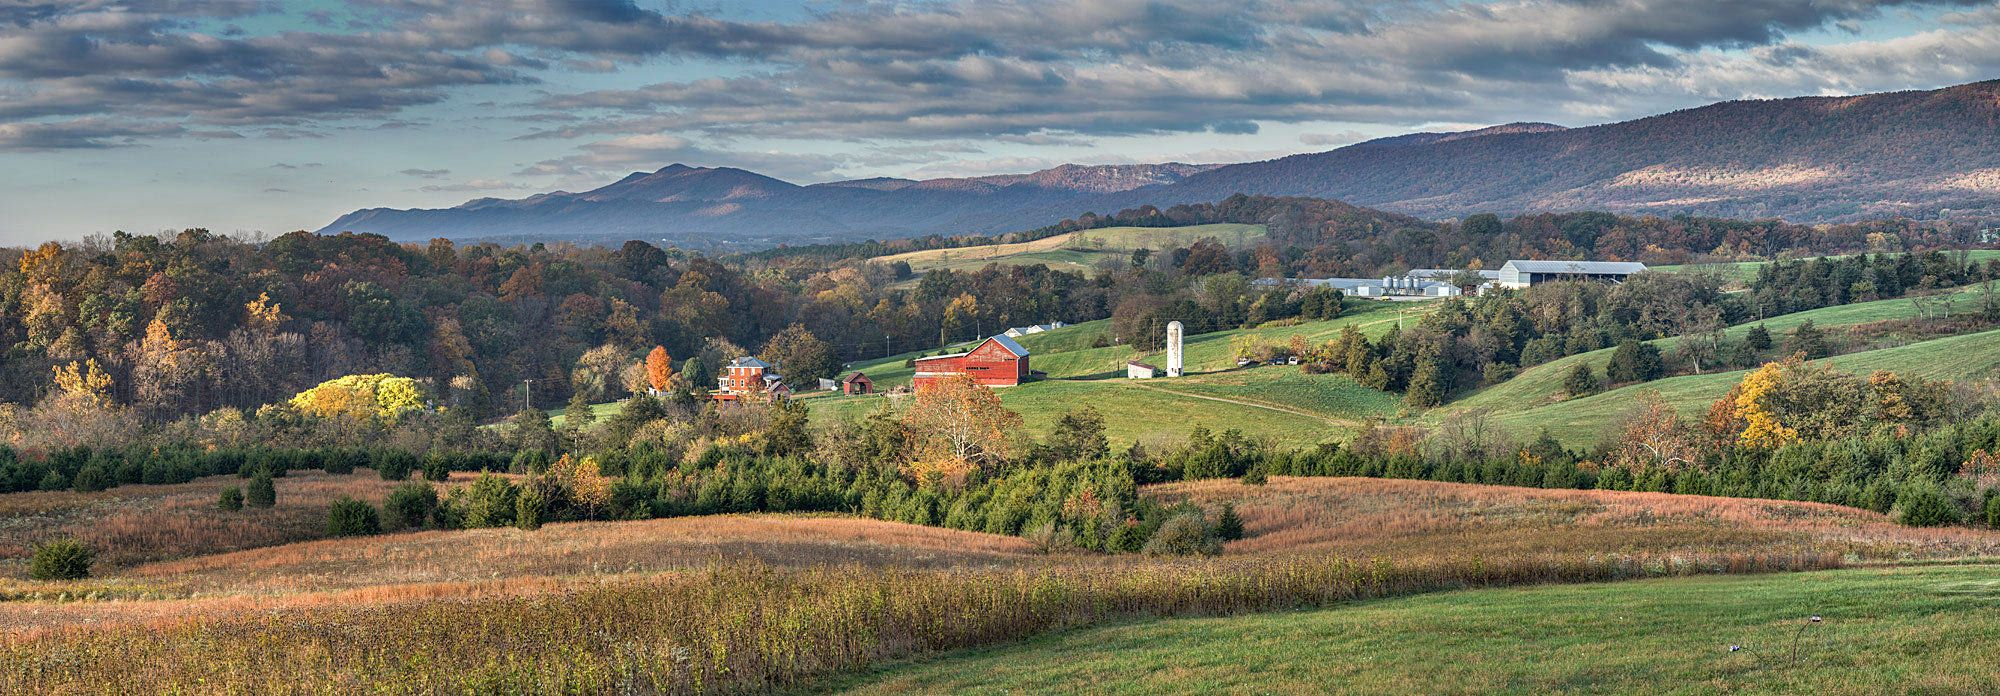 1shenandoah_valley_virginia